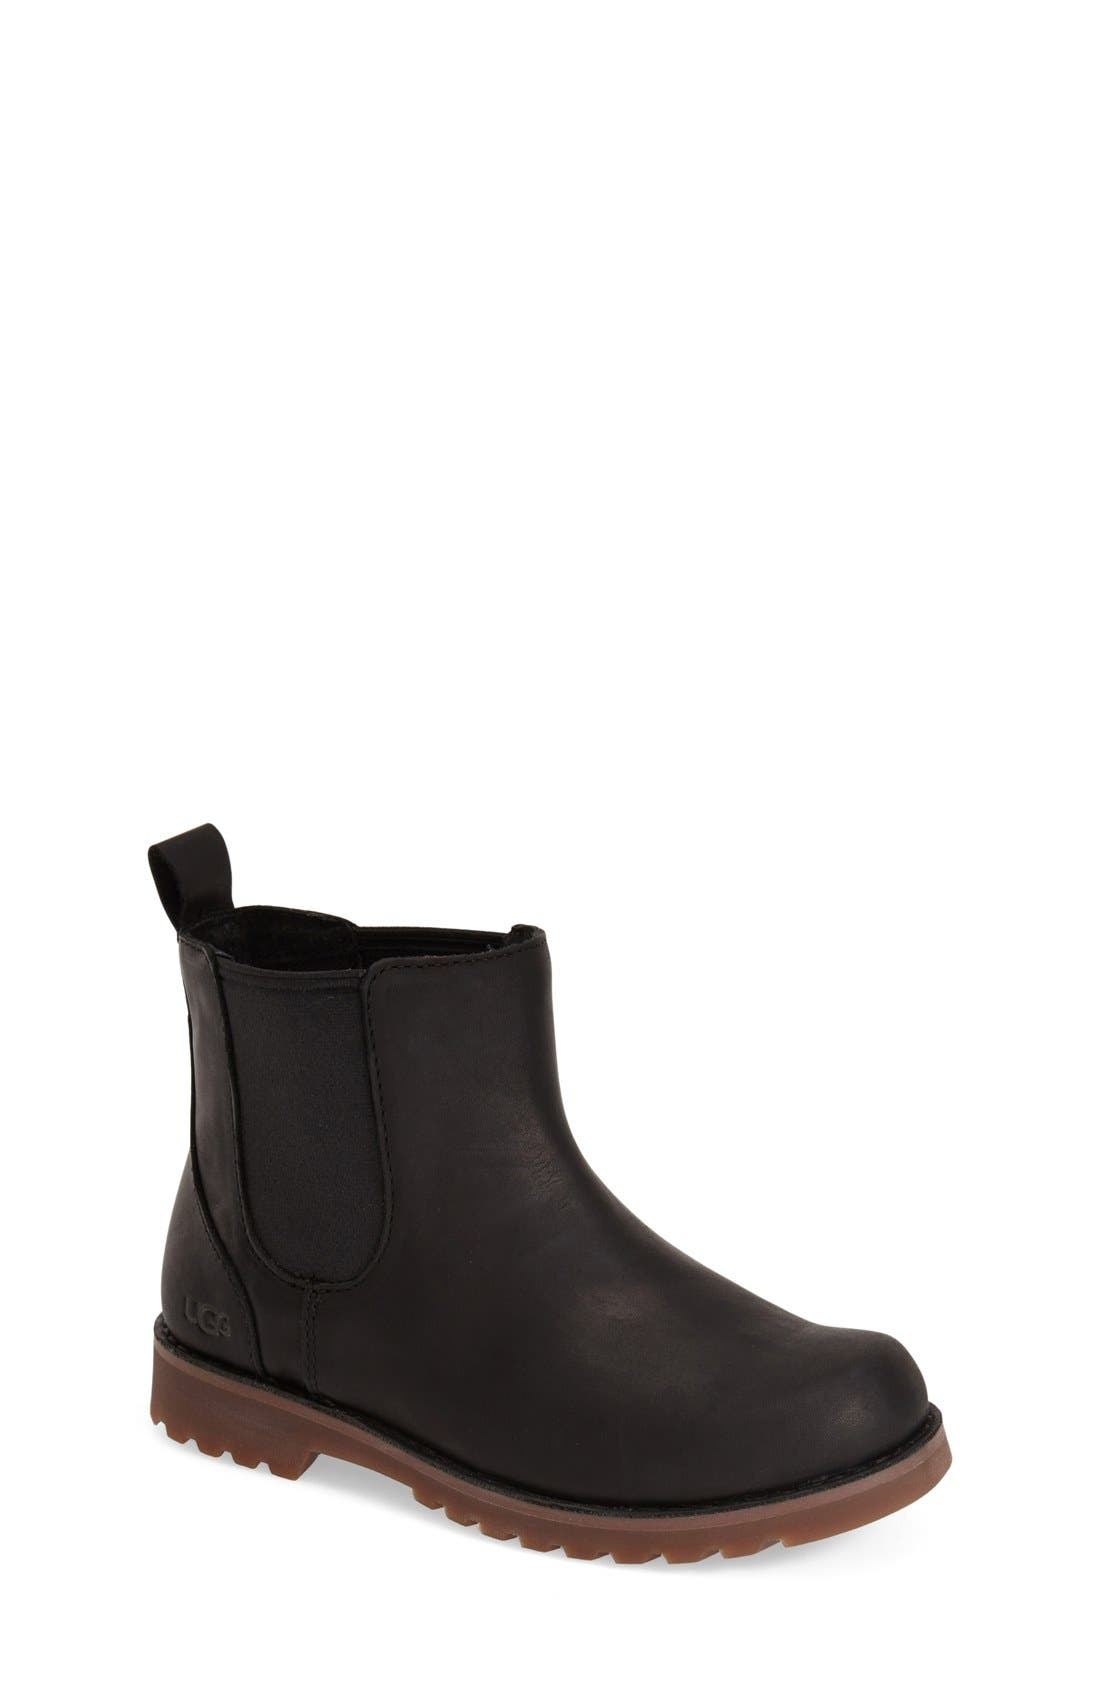 Main Image - UGG® Callum Water Resistant Chelsea Boot (Walker, Toddler, Little Kid & Big Kid)